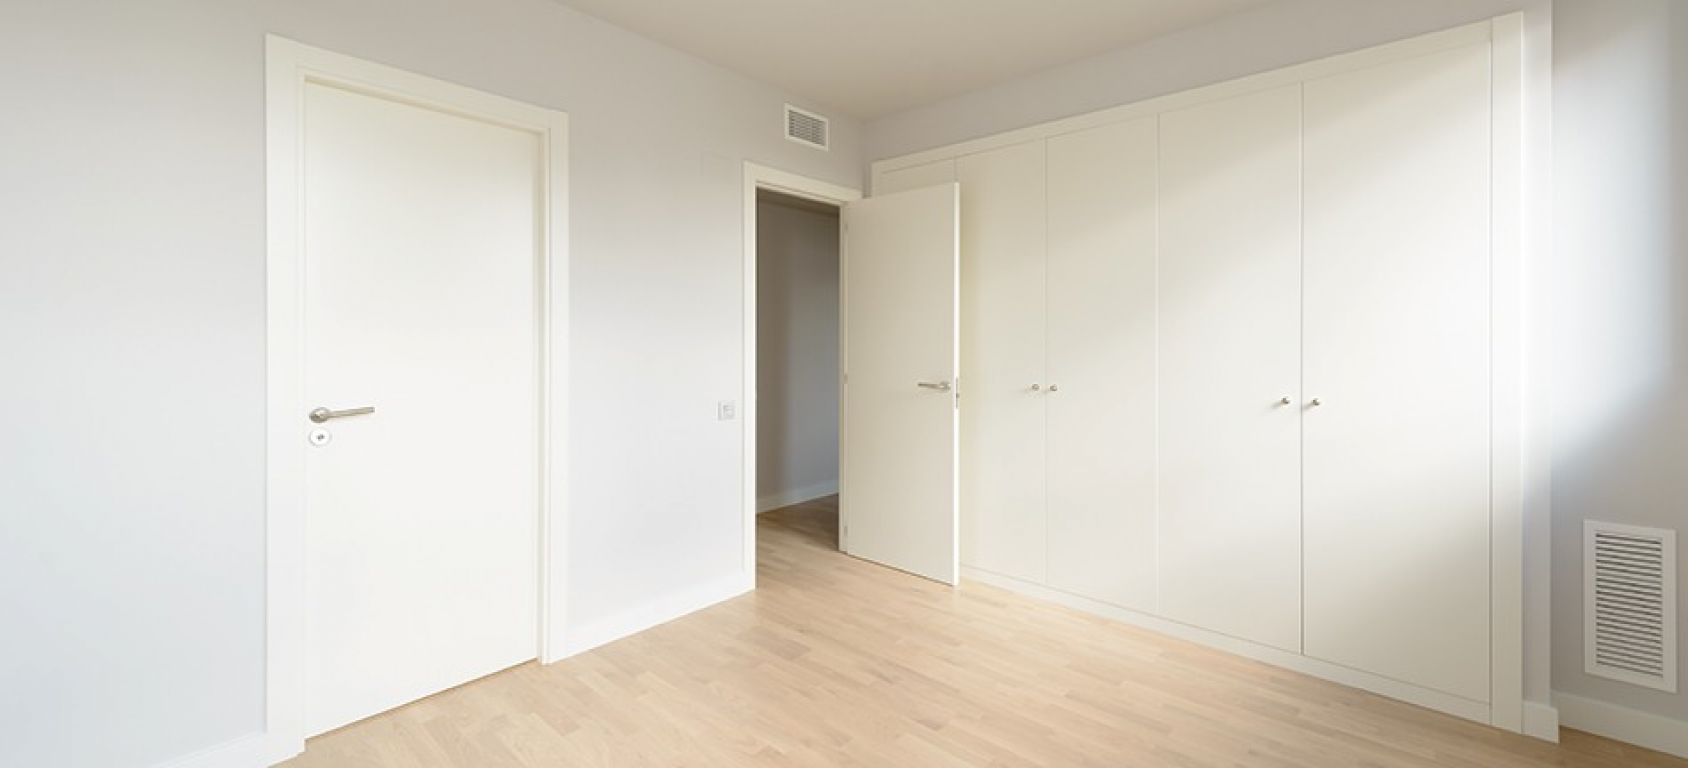 New home - Flat in, 108 m², near bus and train, new